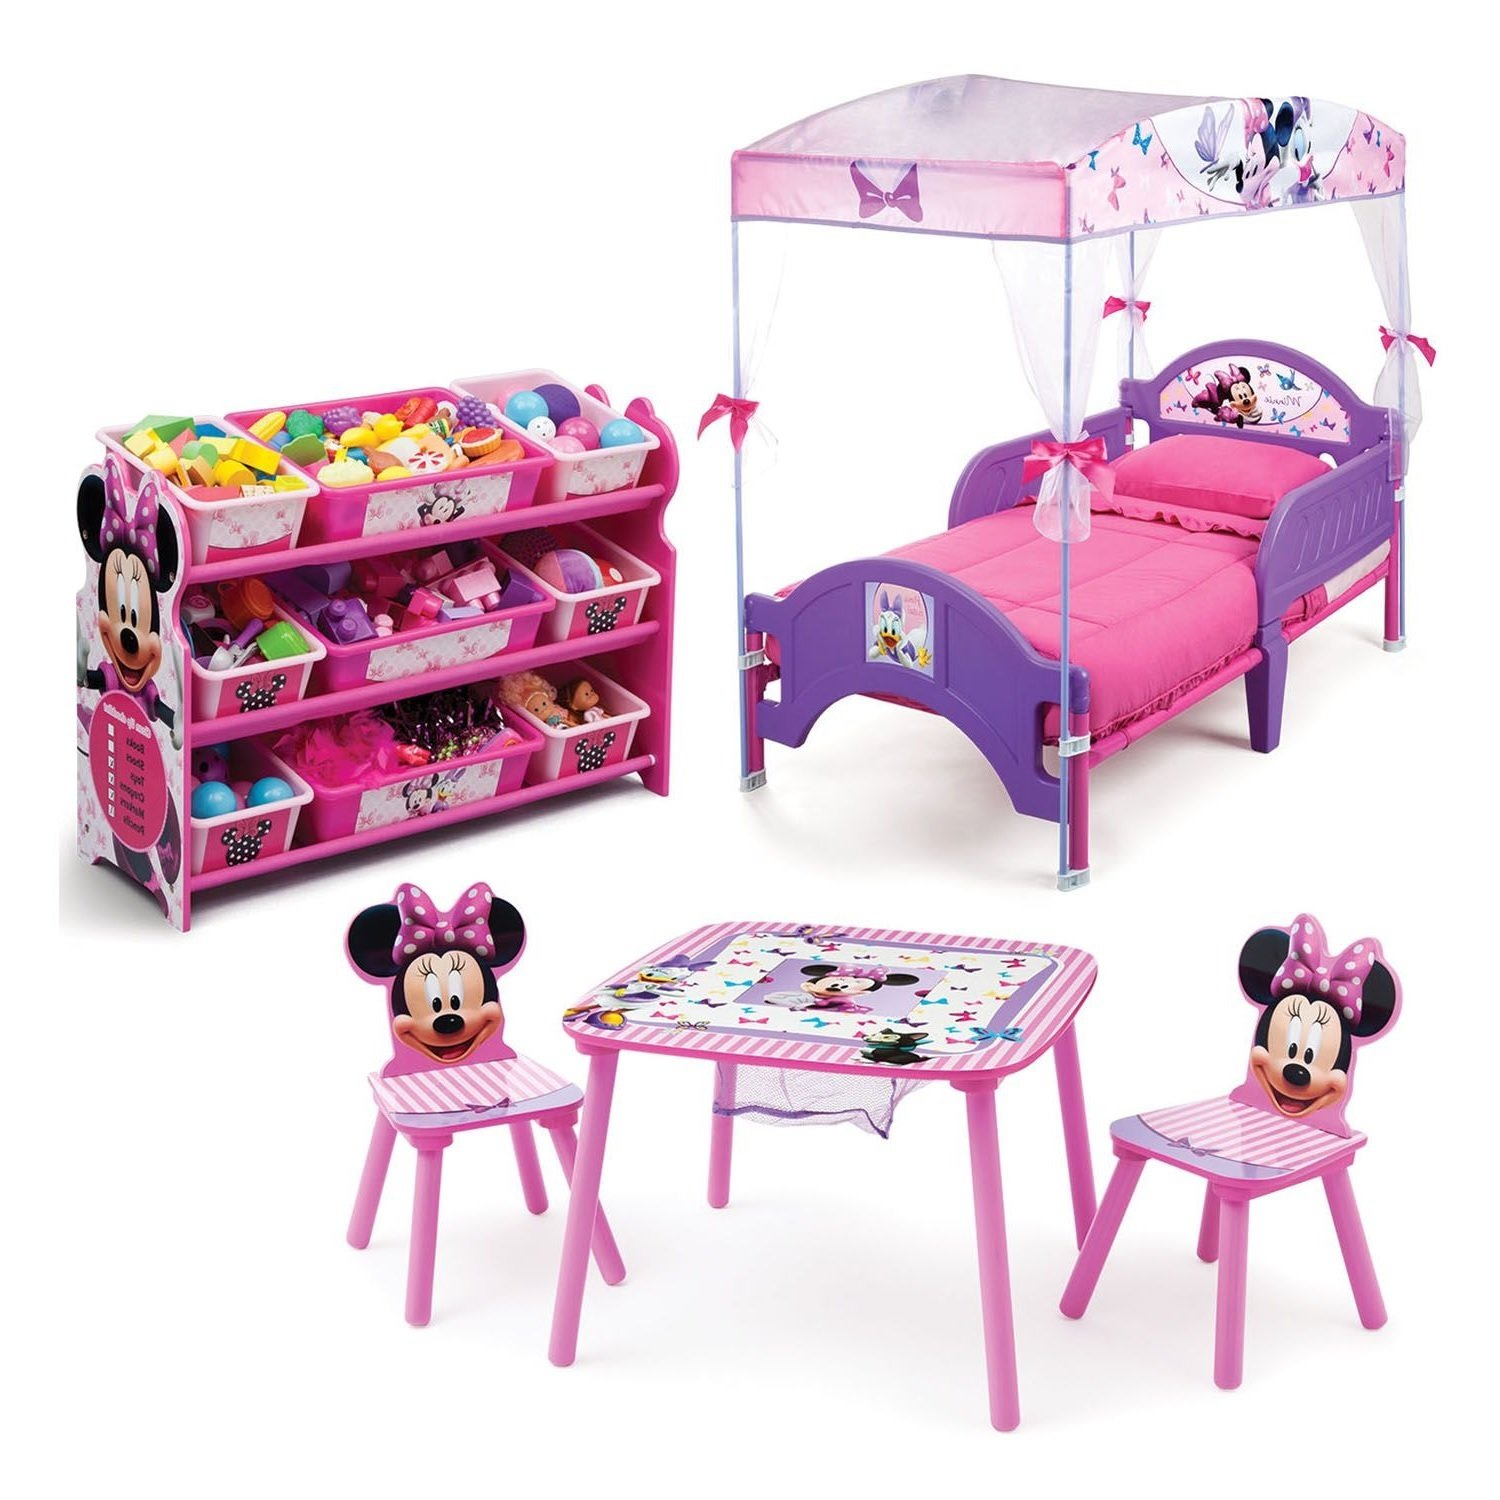 Get Quotations Minnie Mouse Kids Bedroom Furniture Sets 3 Piece Cozy Toddler Bed And Plastic Storage Containers With